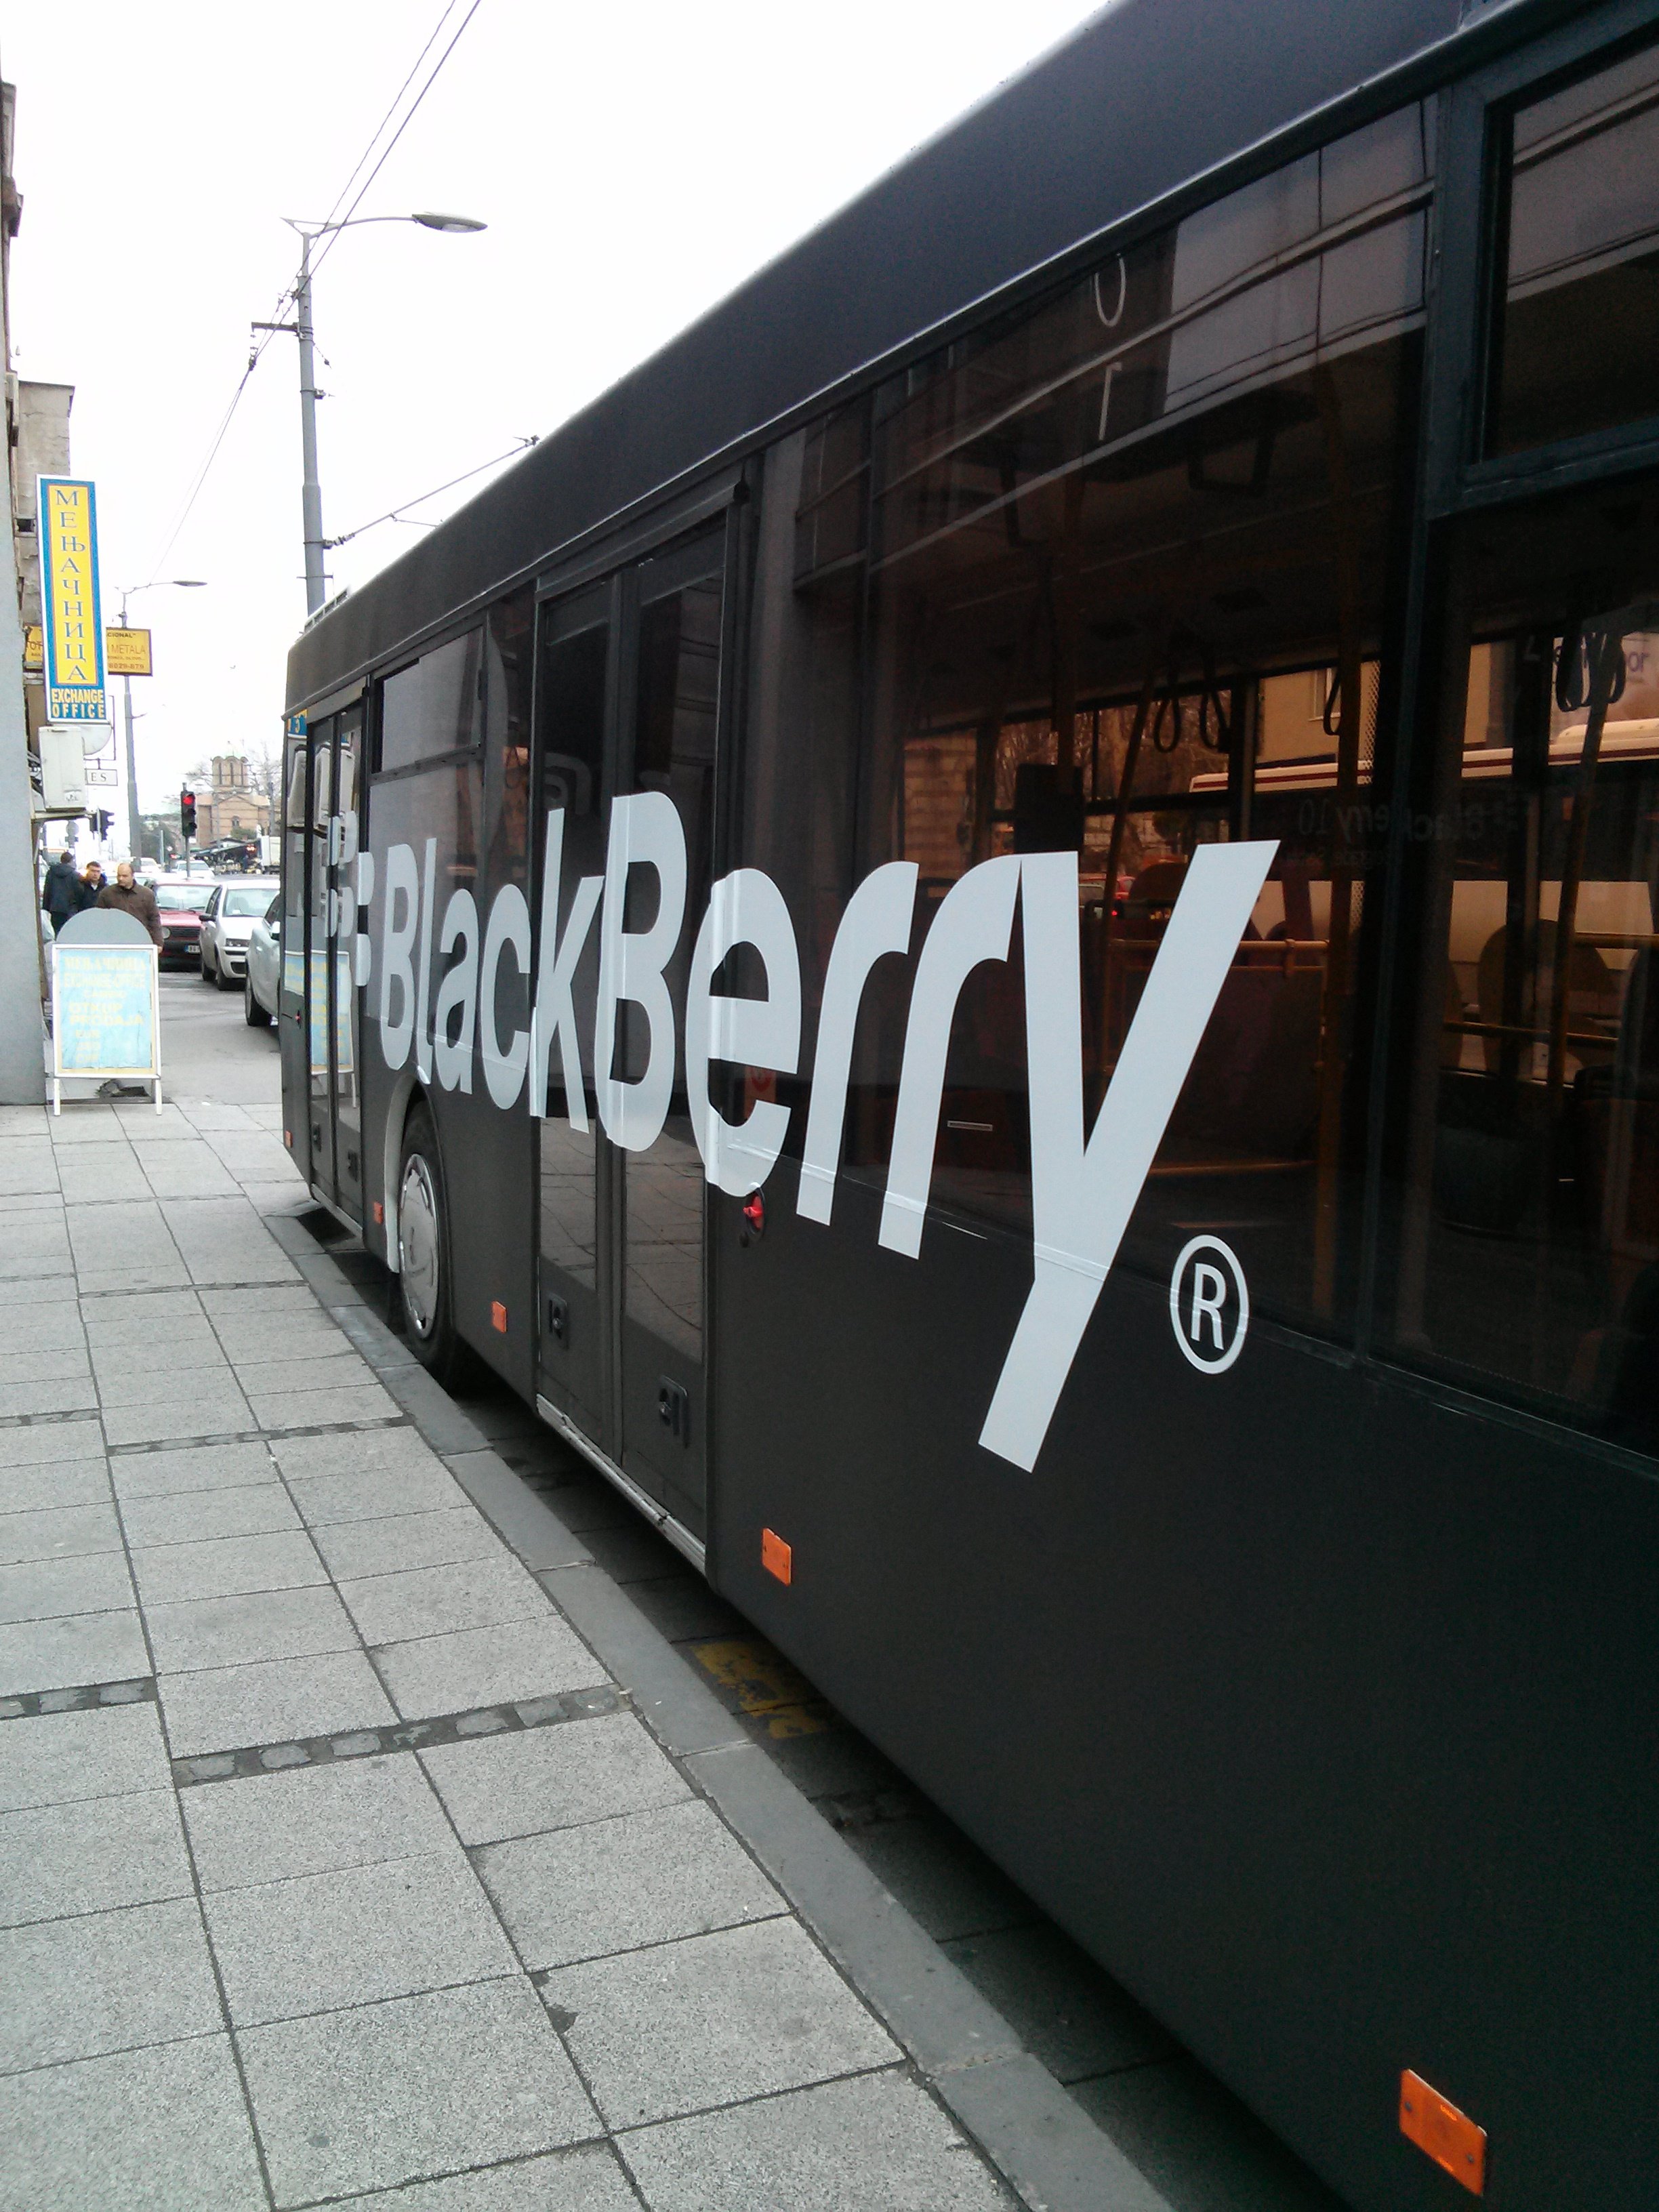 BlackBerry 10 mini Jam BB bus